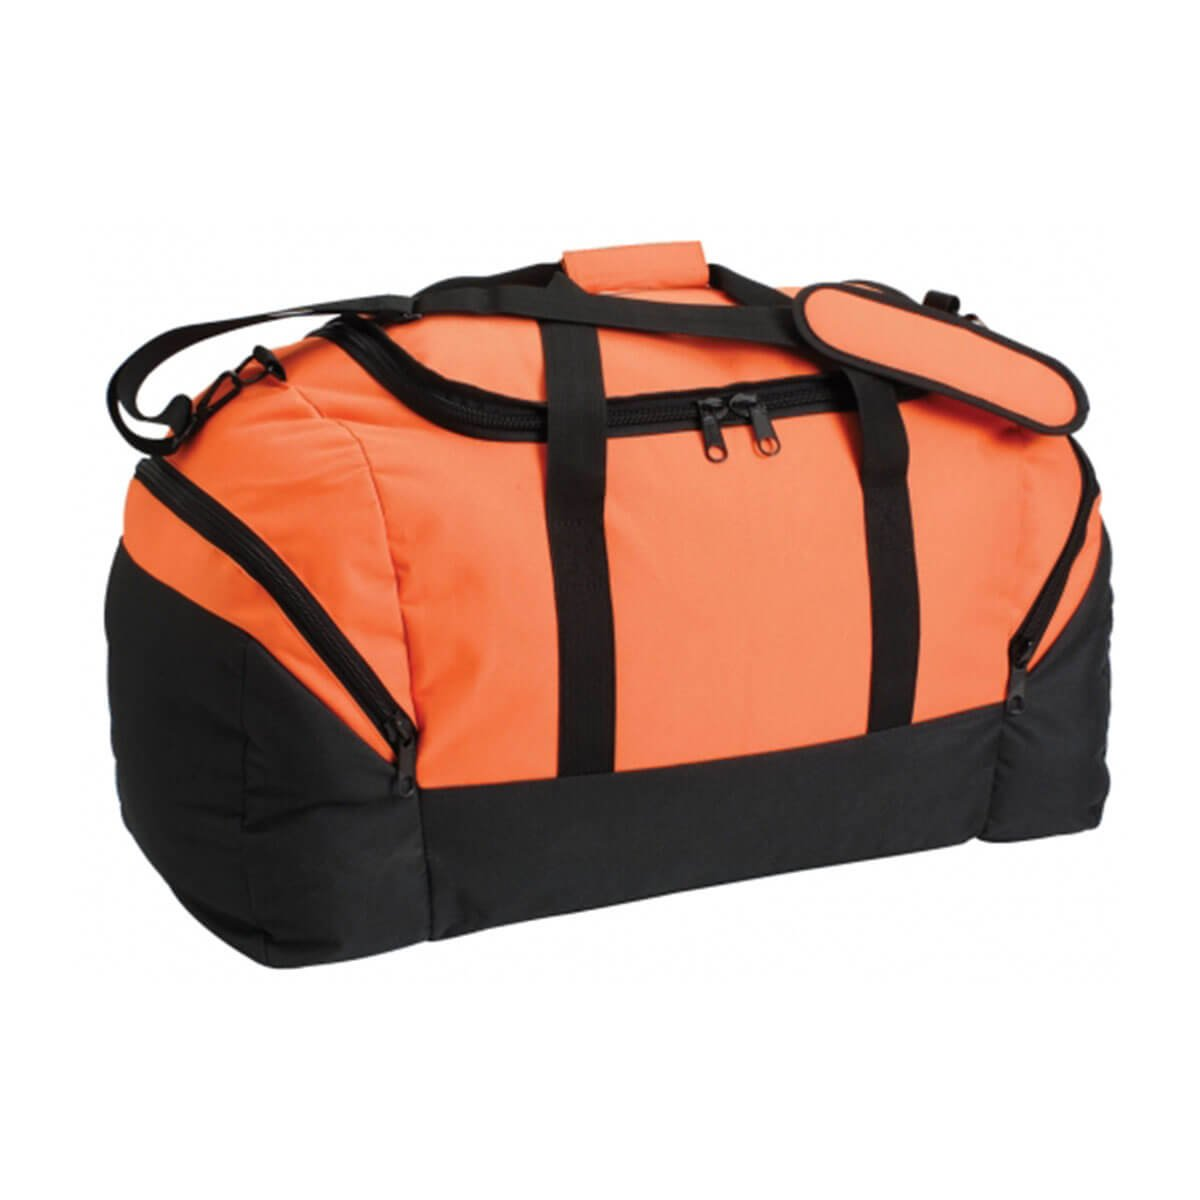 Team Sports Bag-Orange / Black